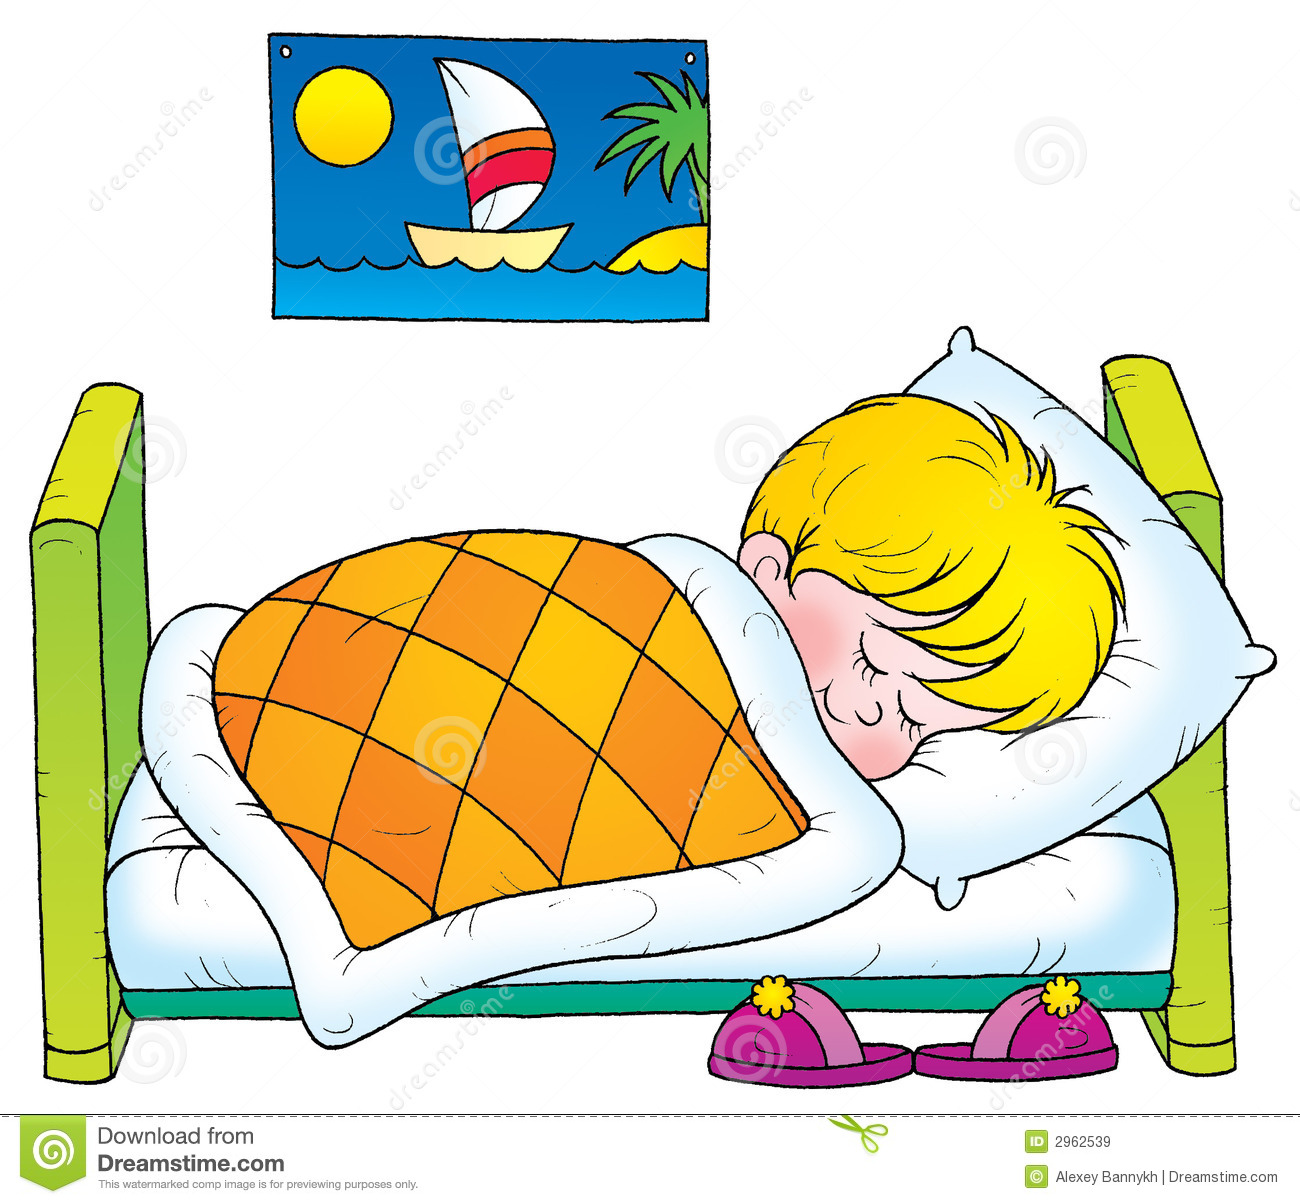 Preschool Nap Time Clipart Cliparthut Fr-Preschool Nap Time Clipart Cliparthut Free Clipart-9